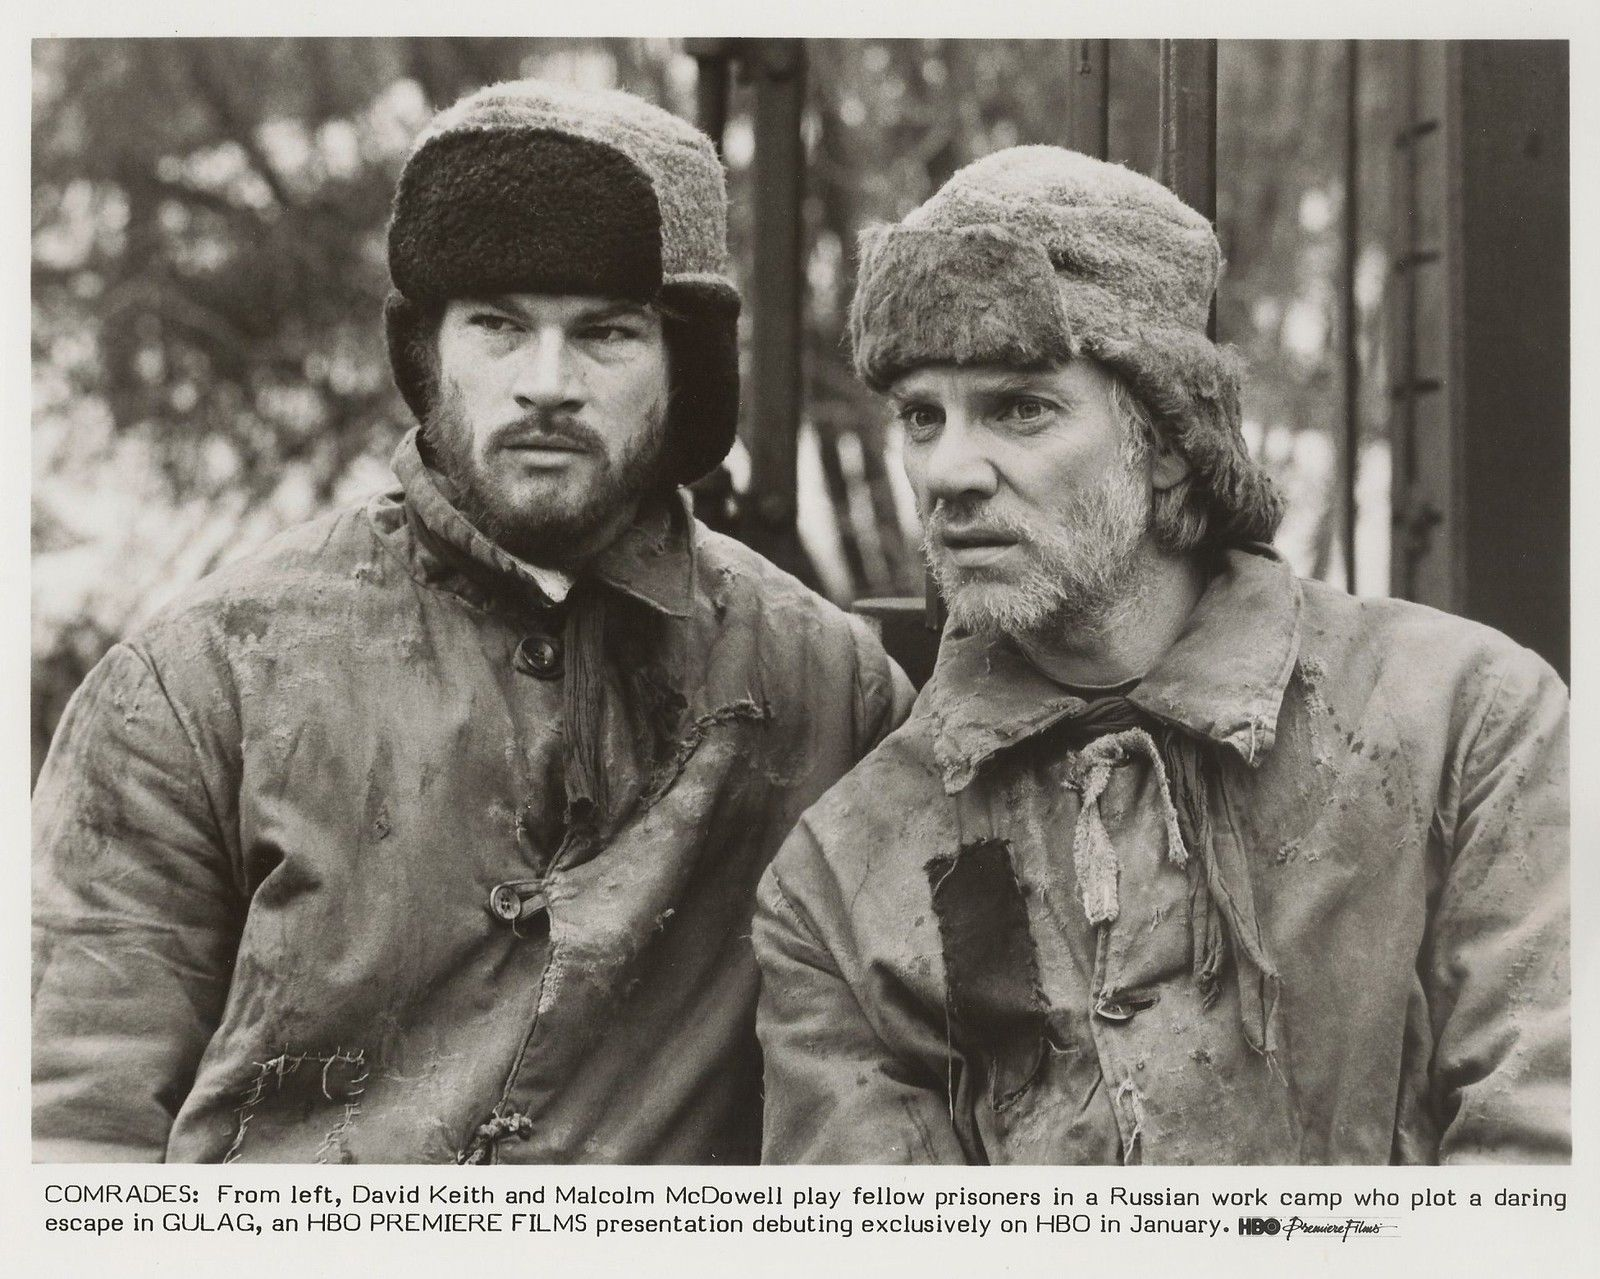 Malcolm McDowell and David Keith in Gulag (1985)